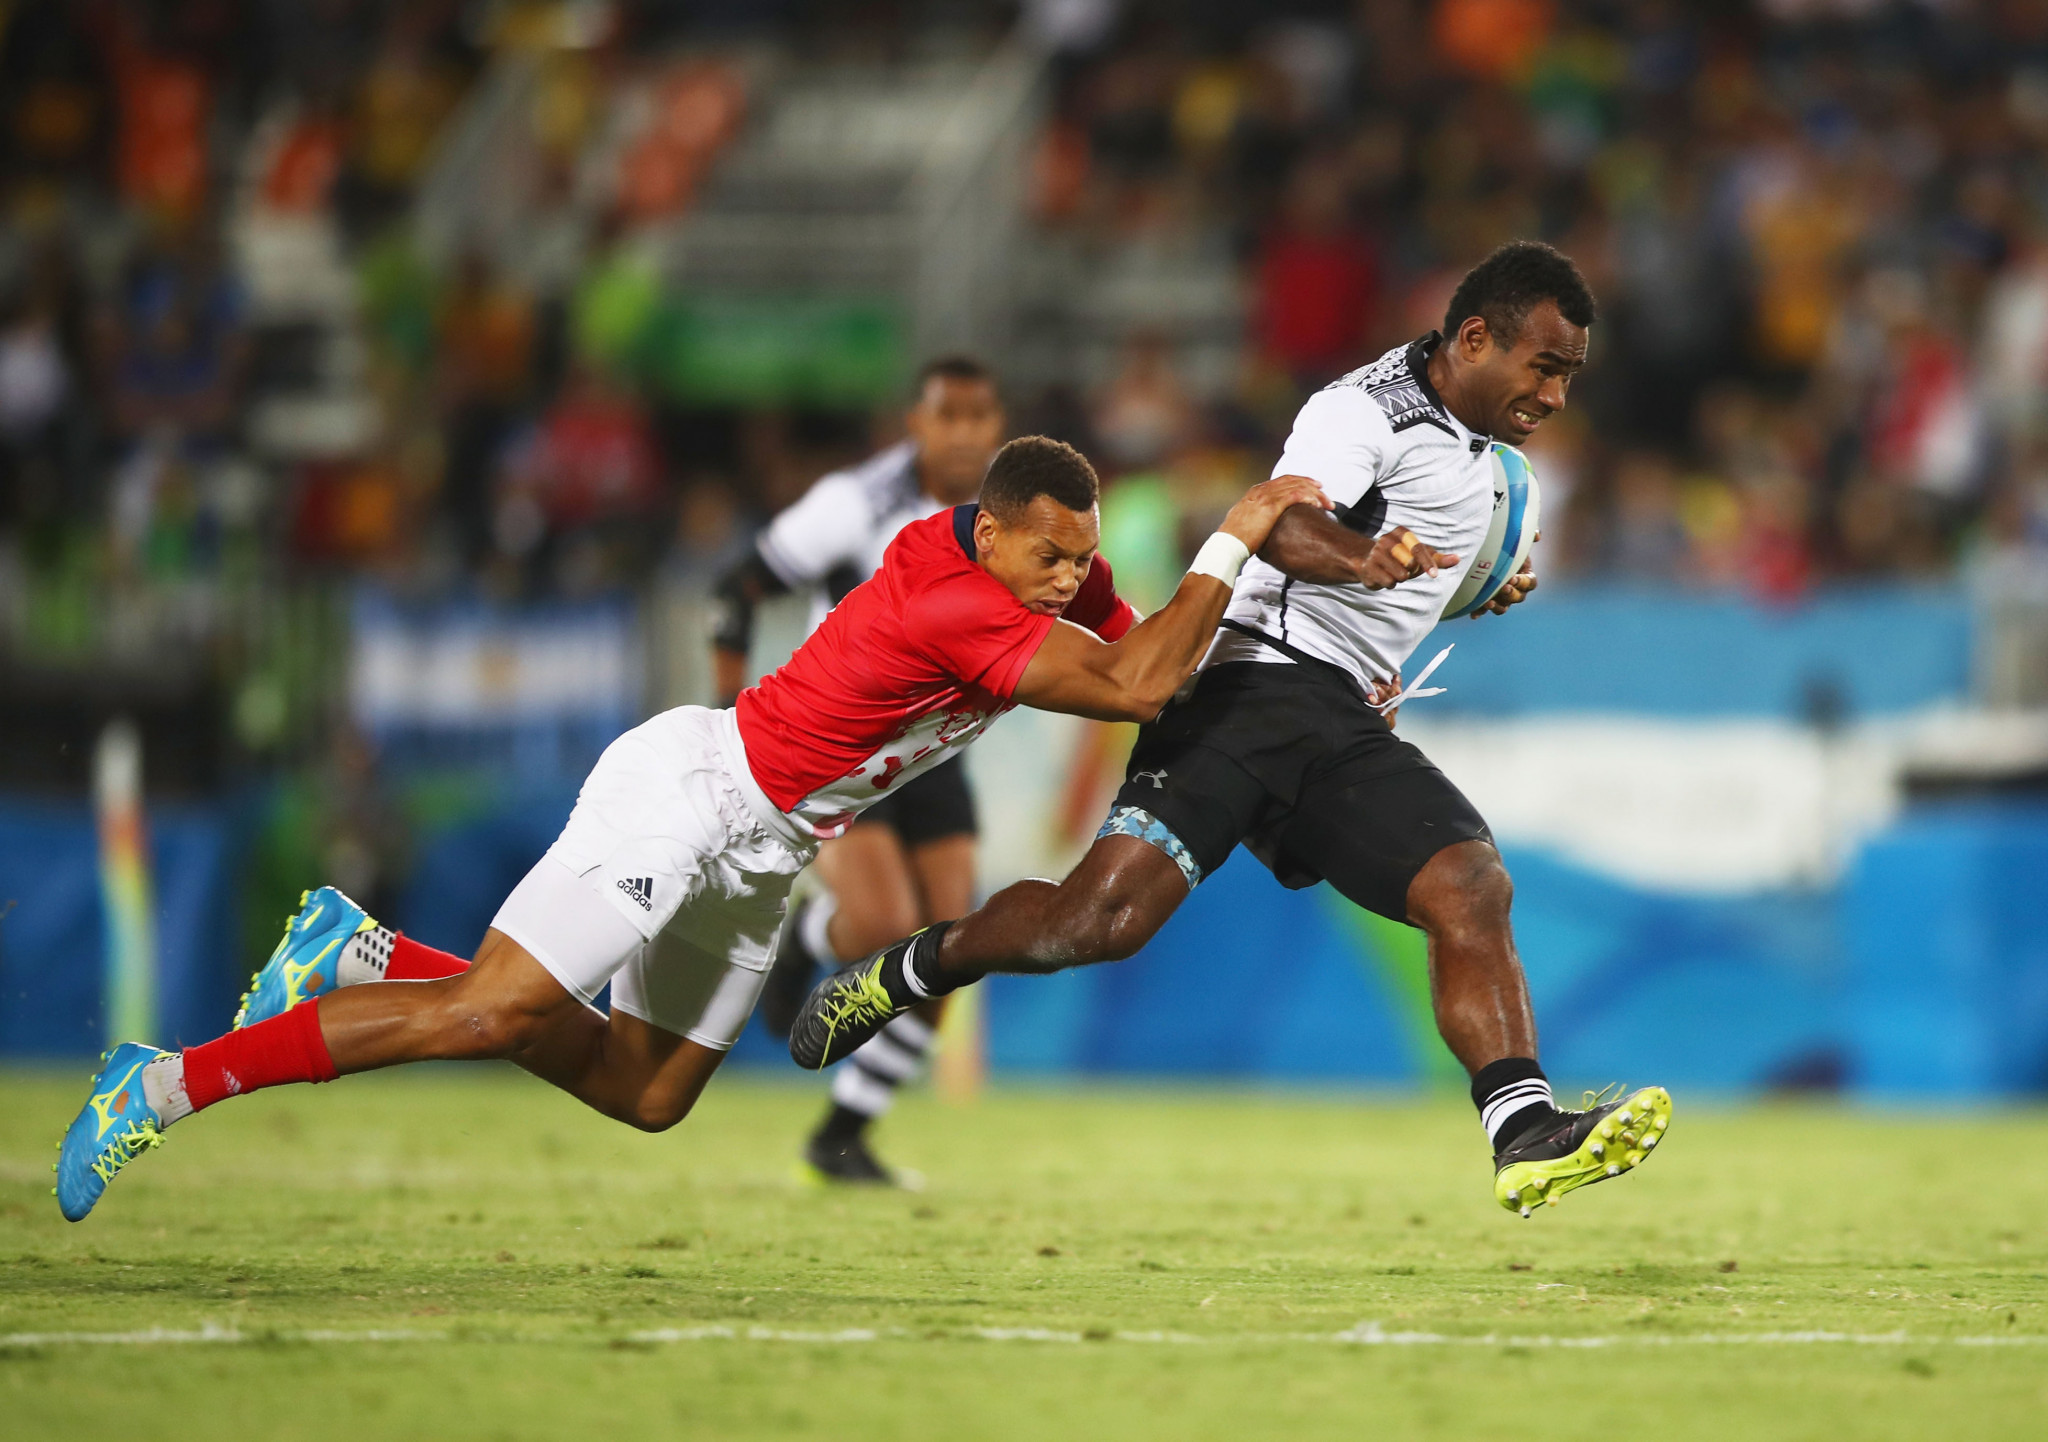 Rugby sevens made a successful debut on the Olympic programme at Rio 2016 ©Getty Images